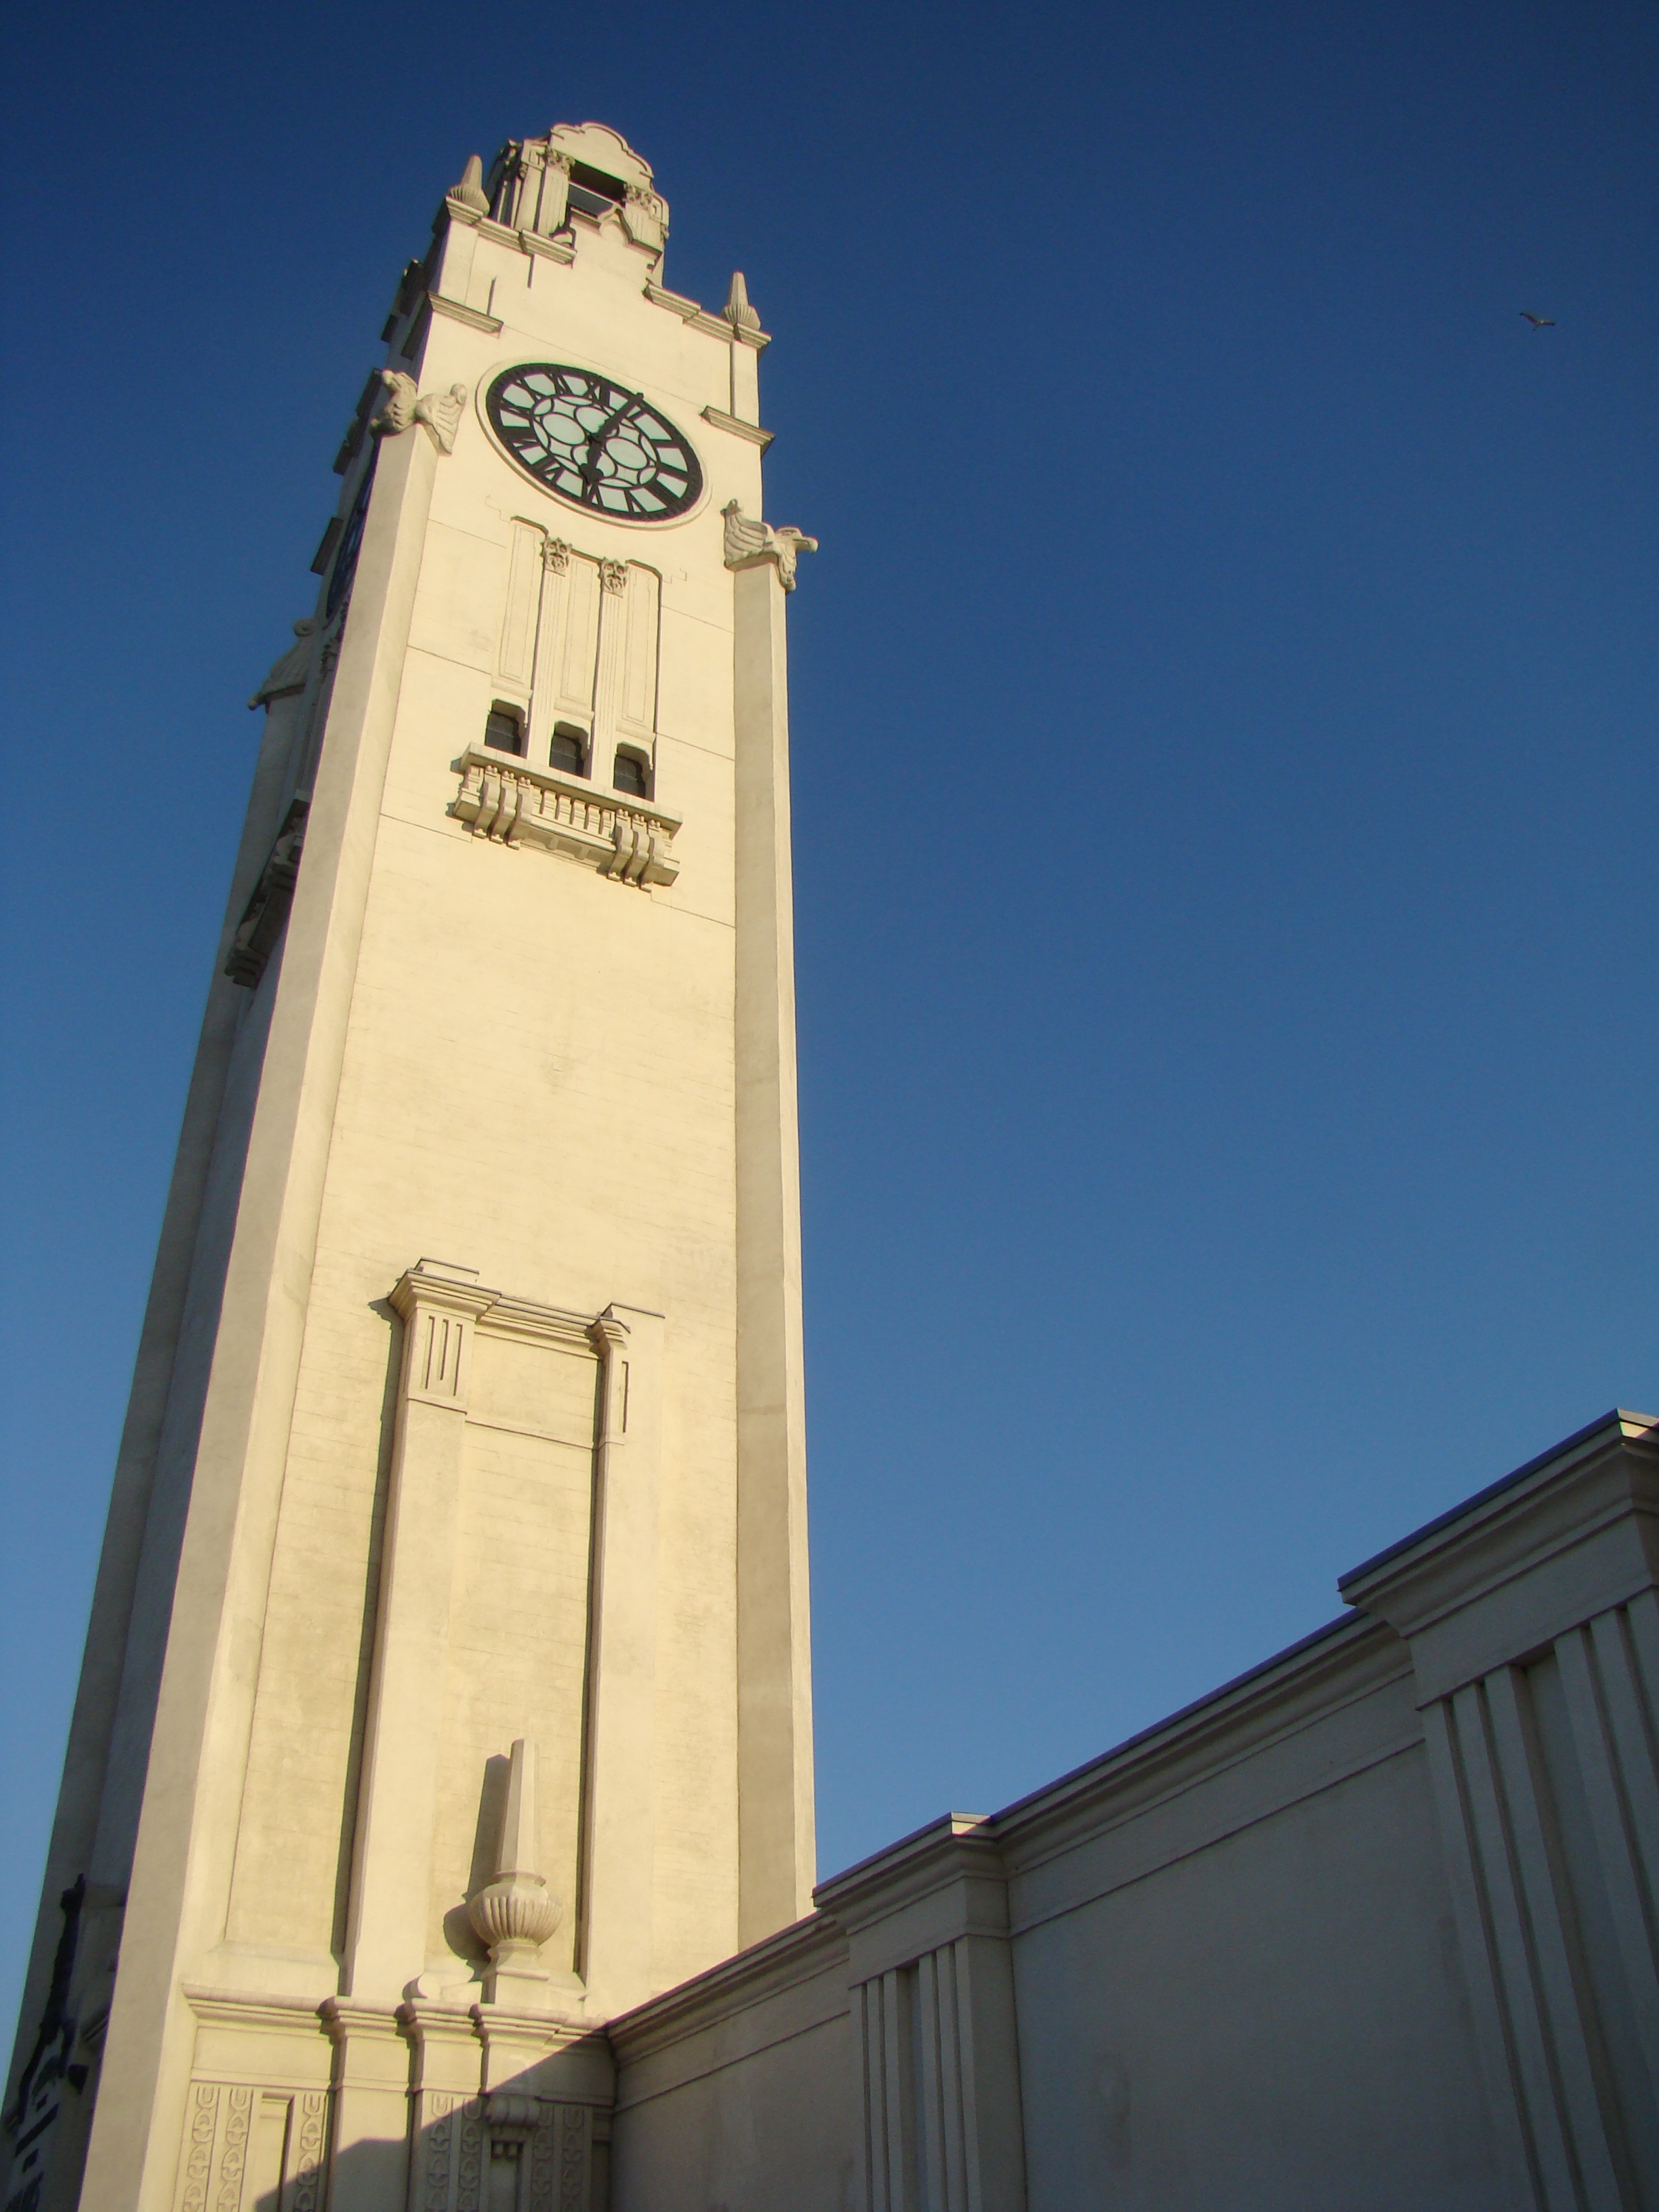 Clock Tower - Montral, Taylor C. Noakes 2009